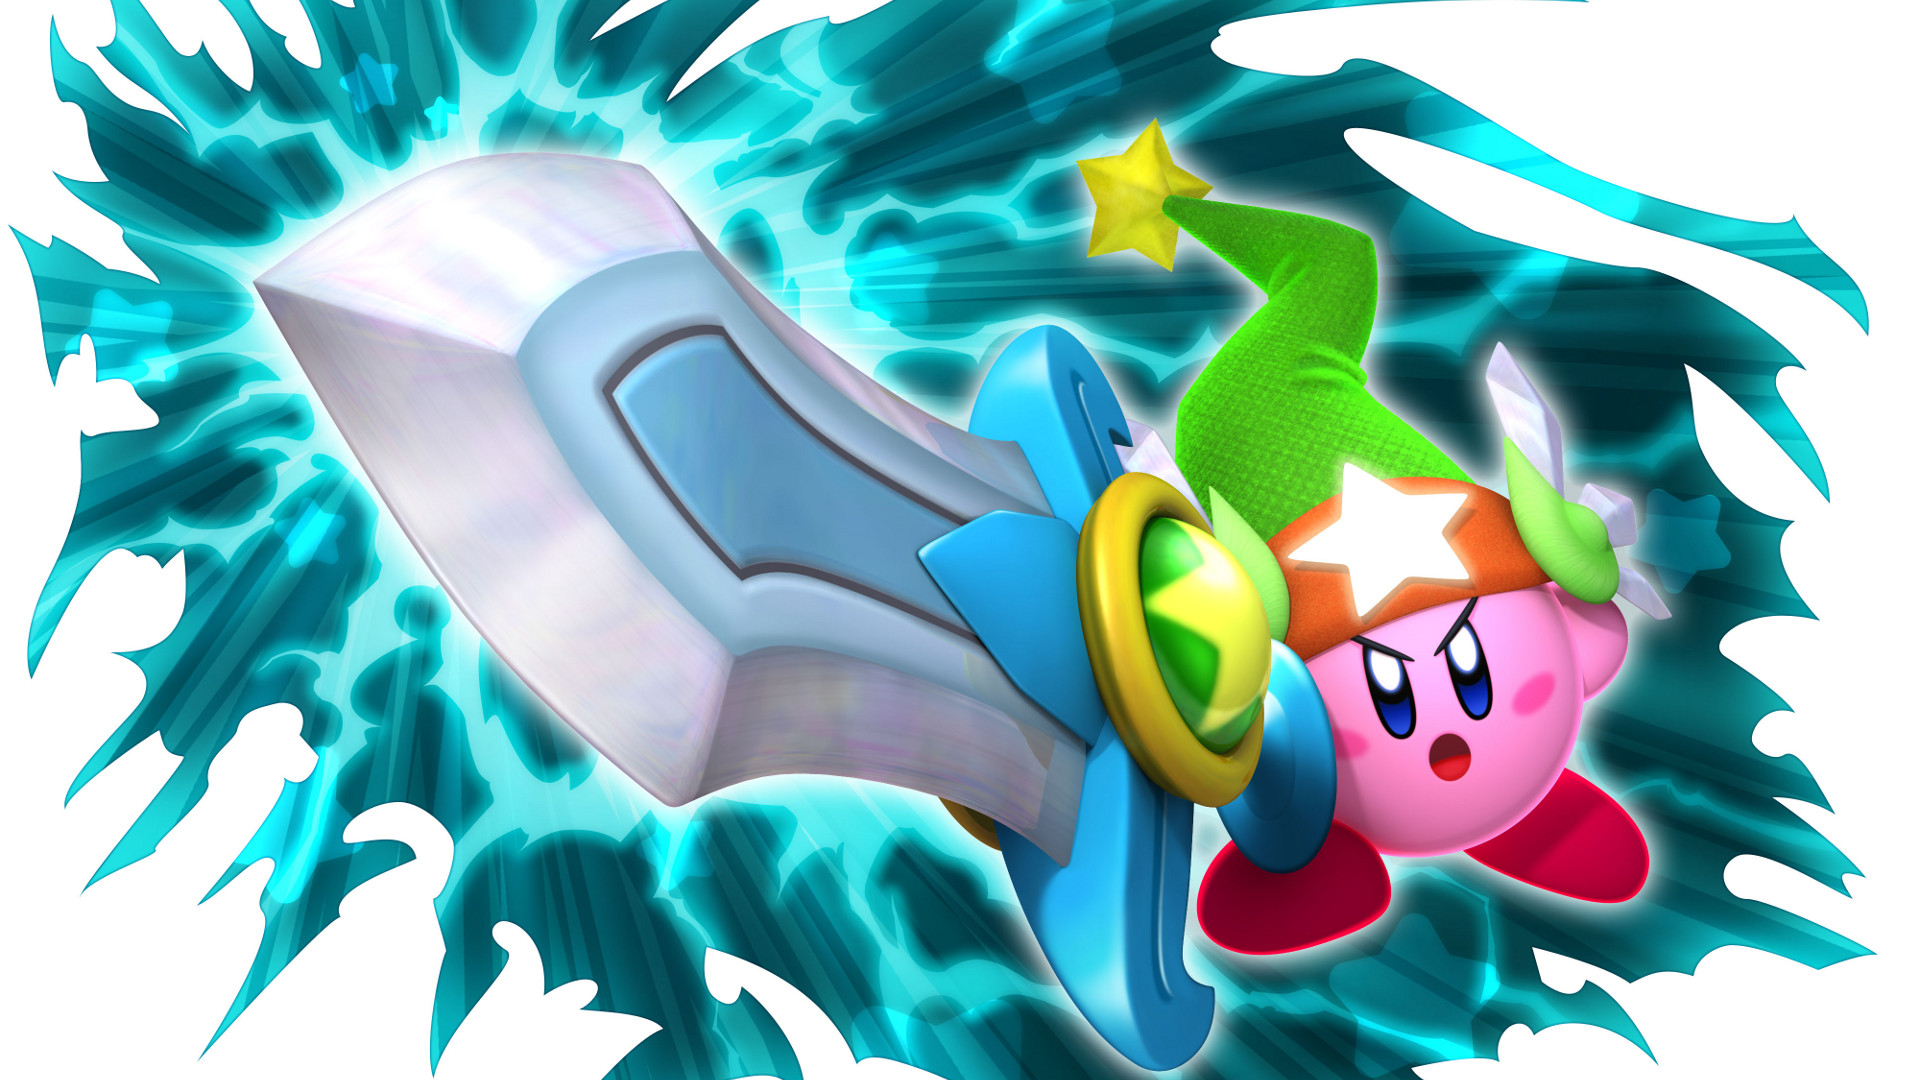 Kirbys Return To Dream Land Full HD Wallpaper And Background Image